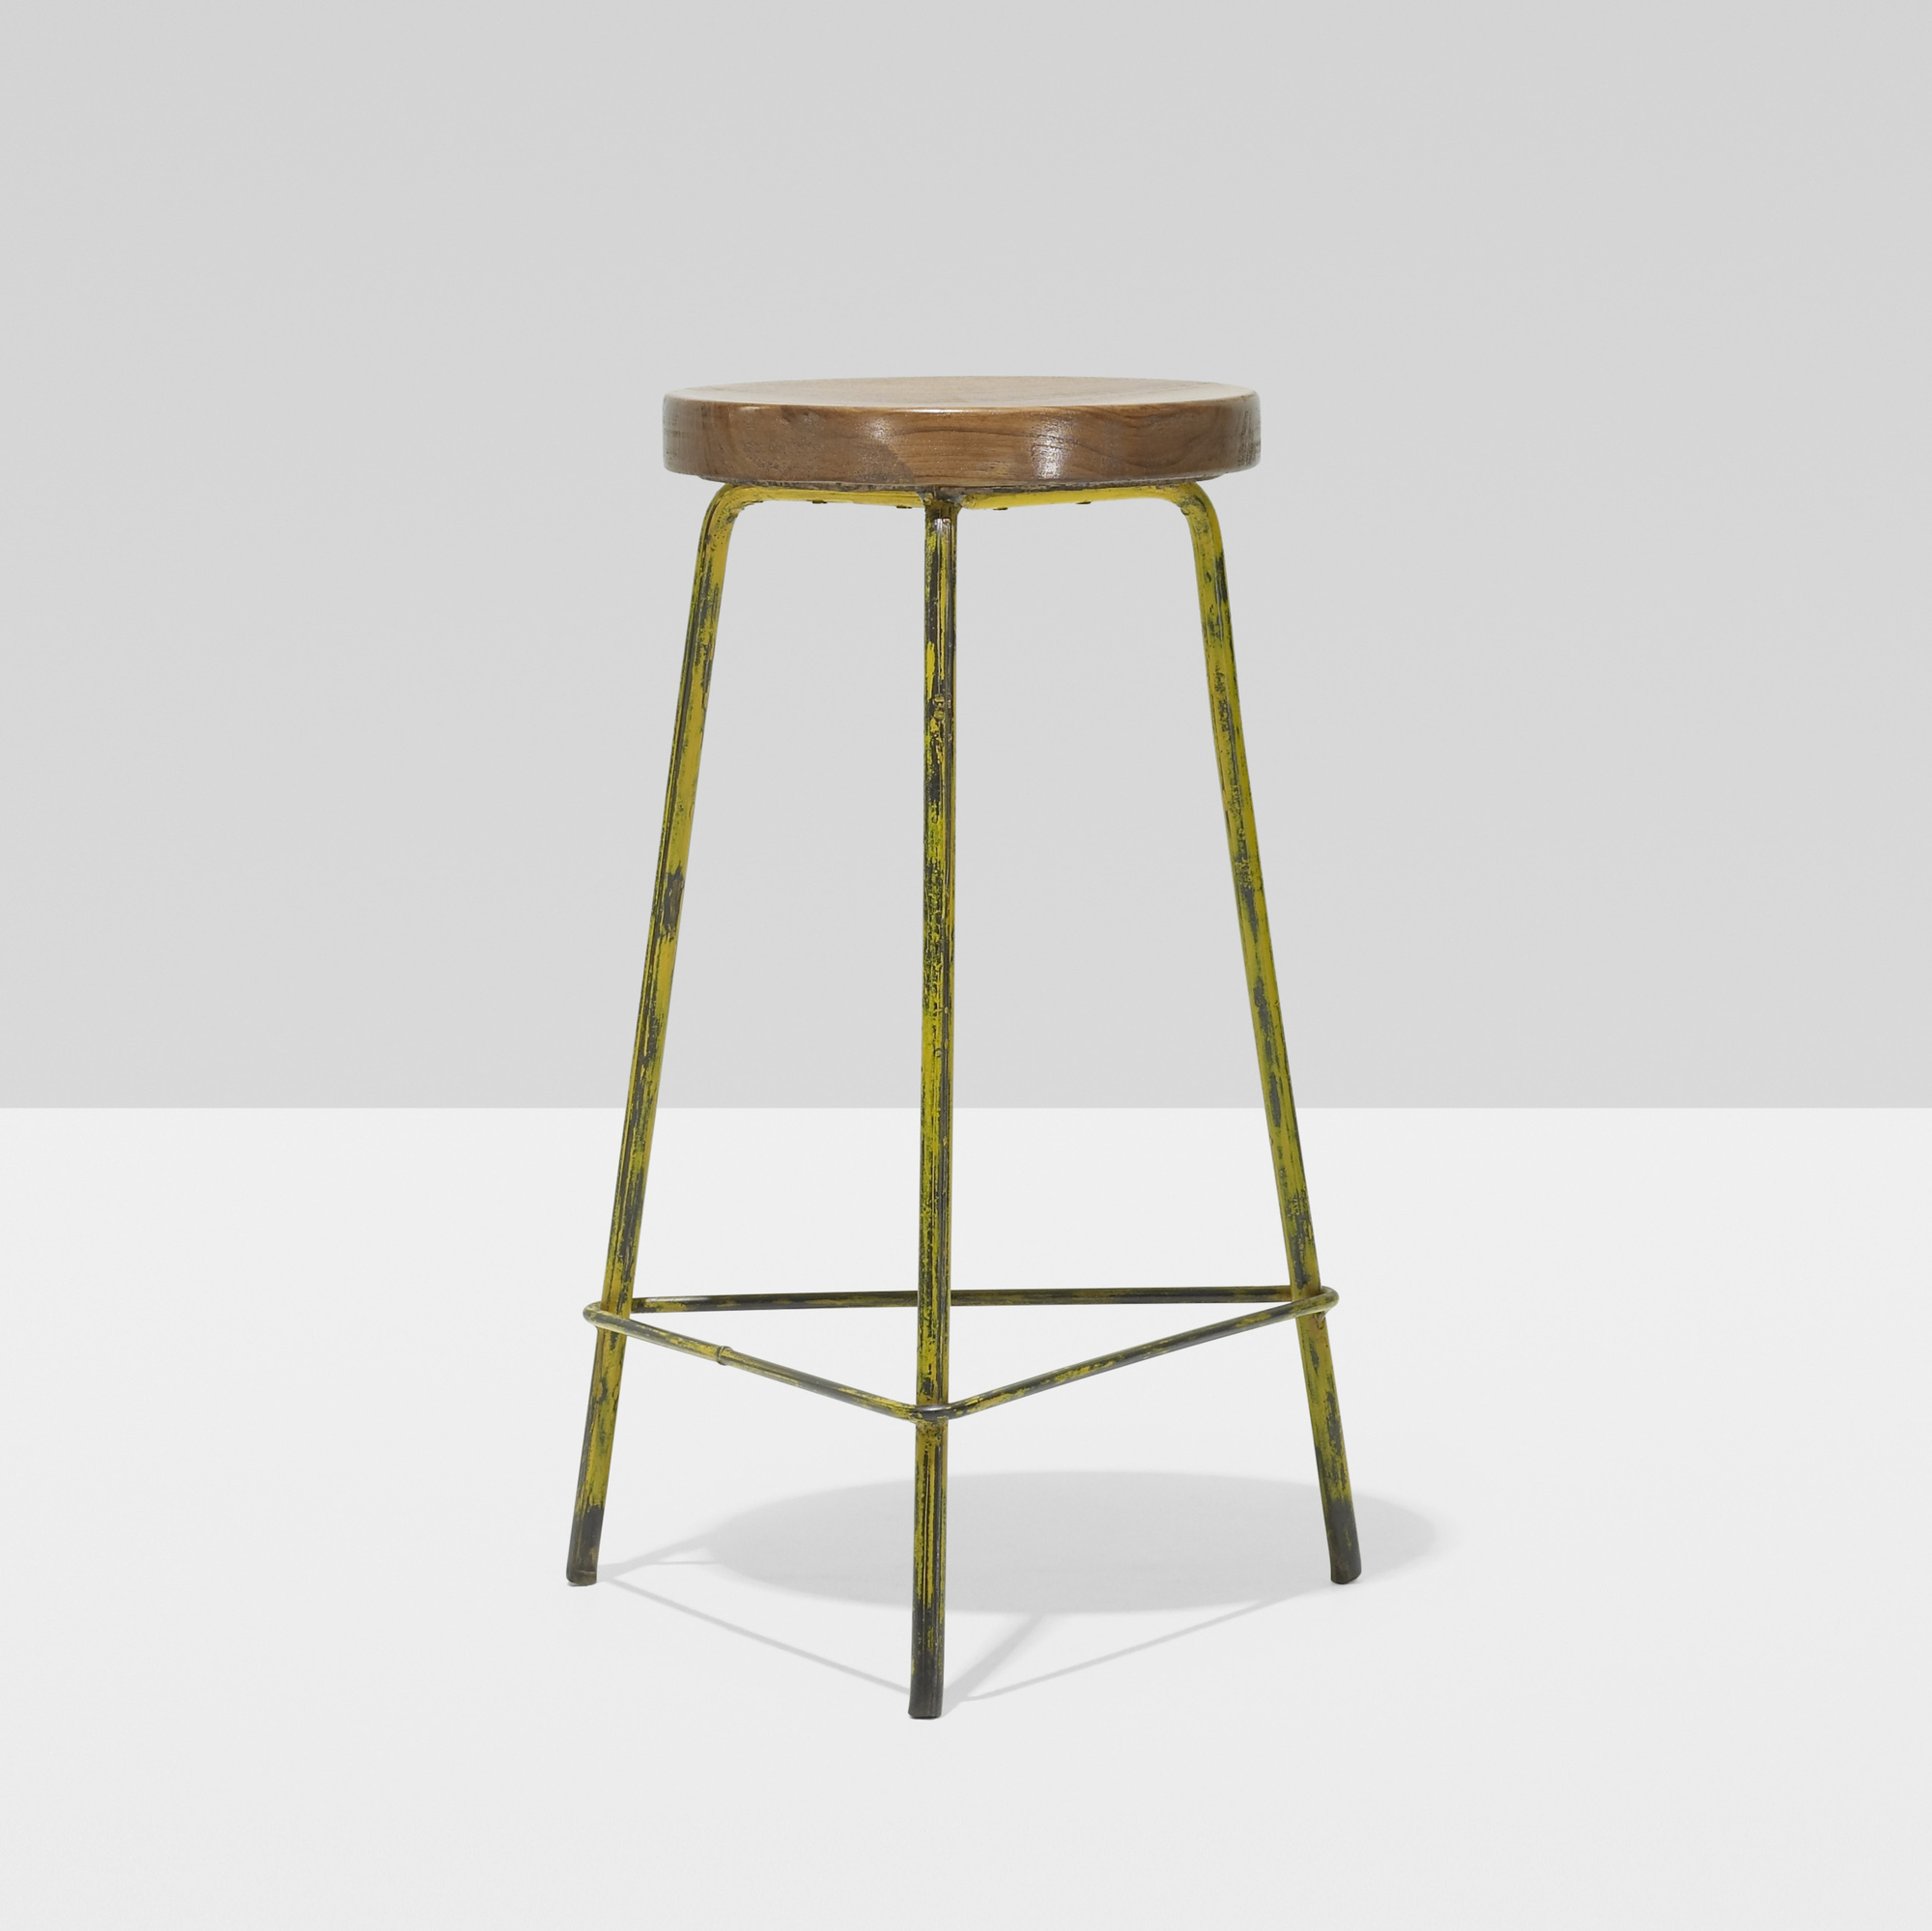 126: Pierre Jeanneret / stool from the College of Architecture, Chandigarh (1 of 2)